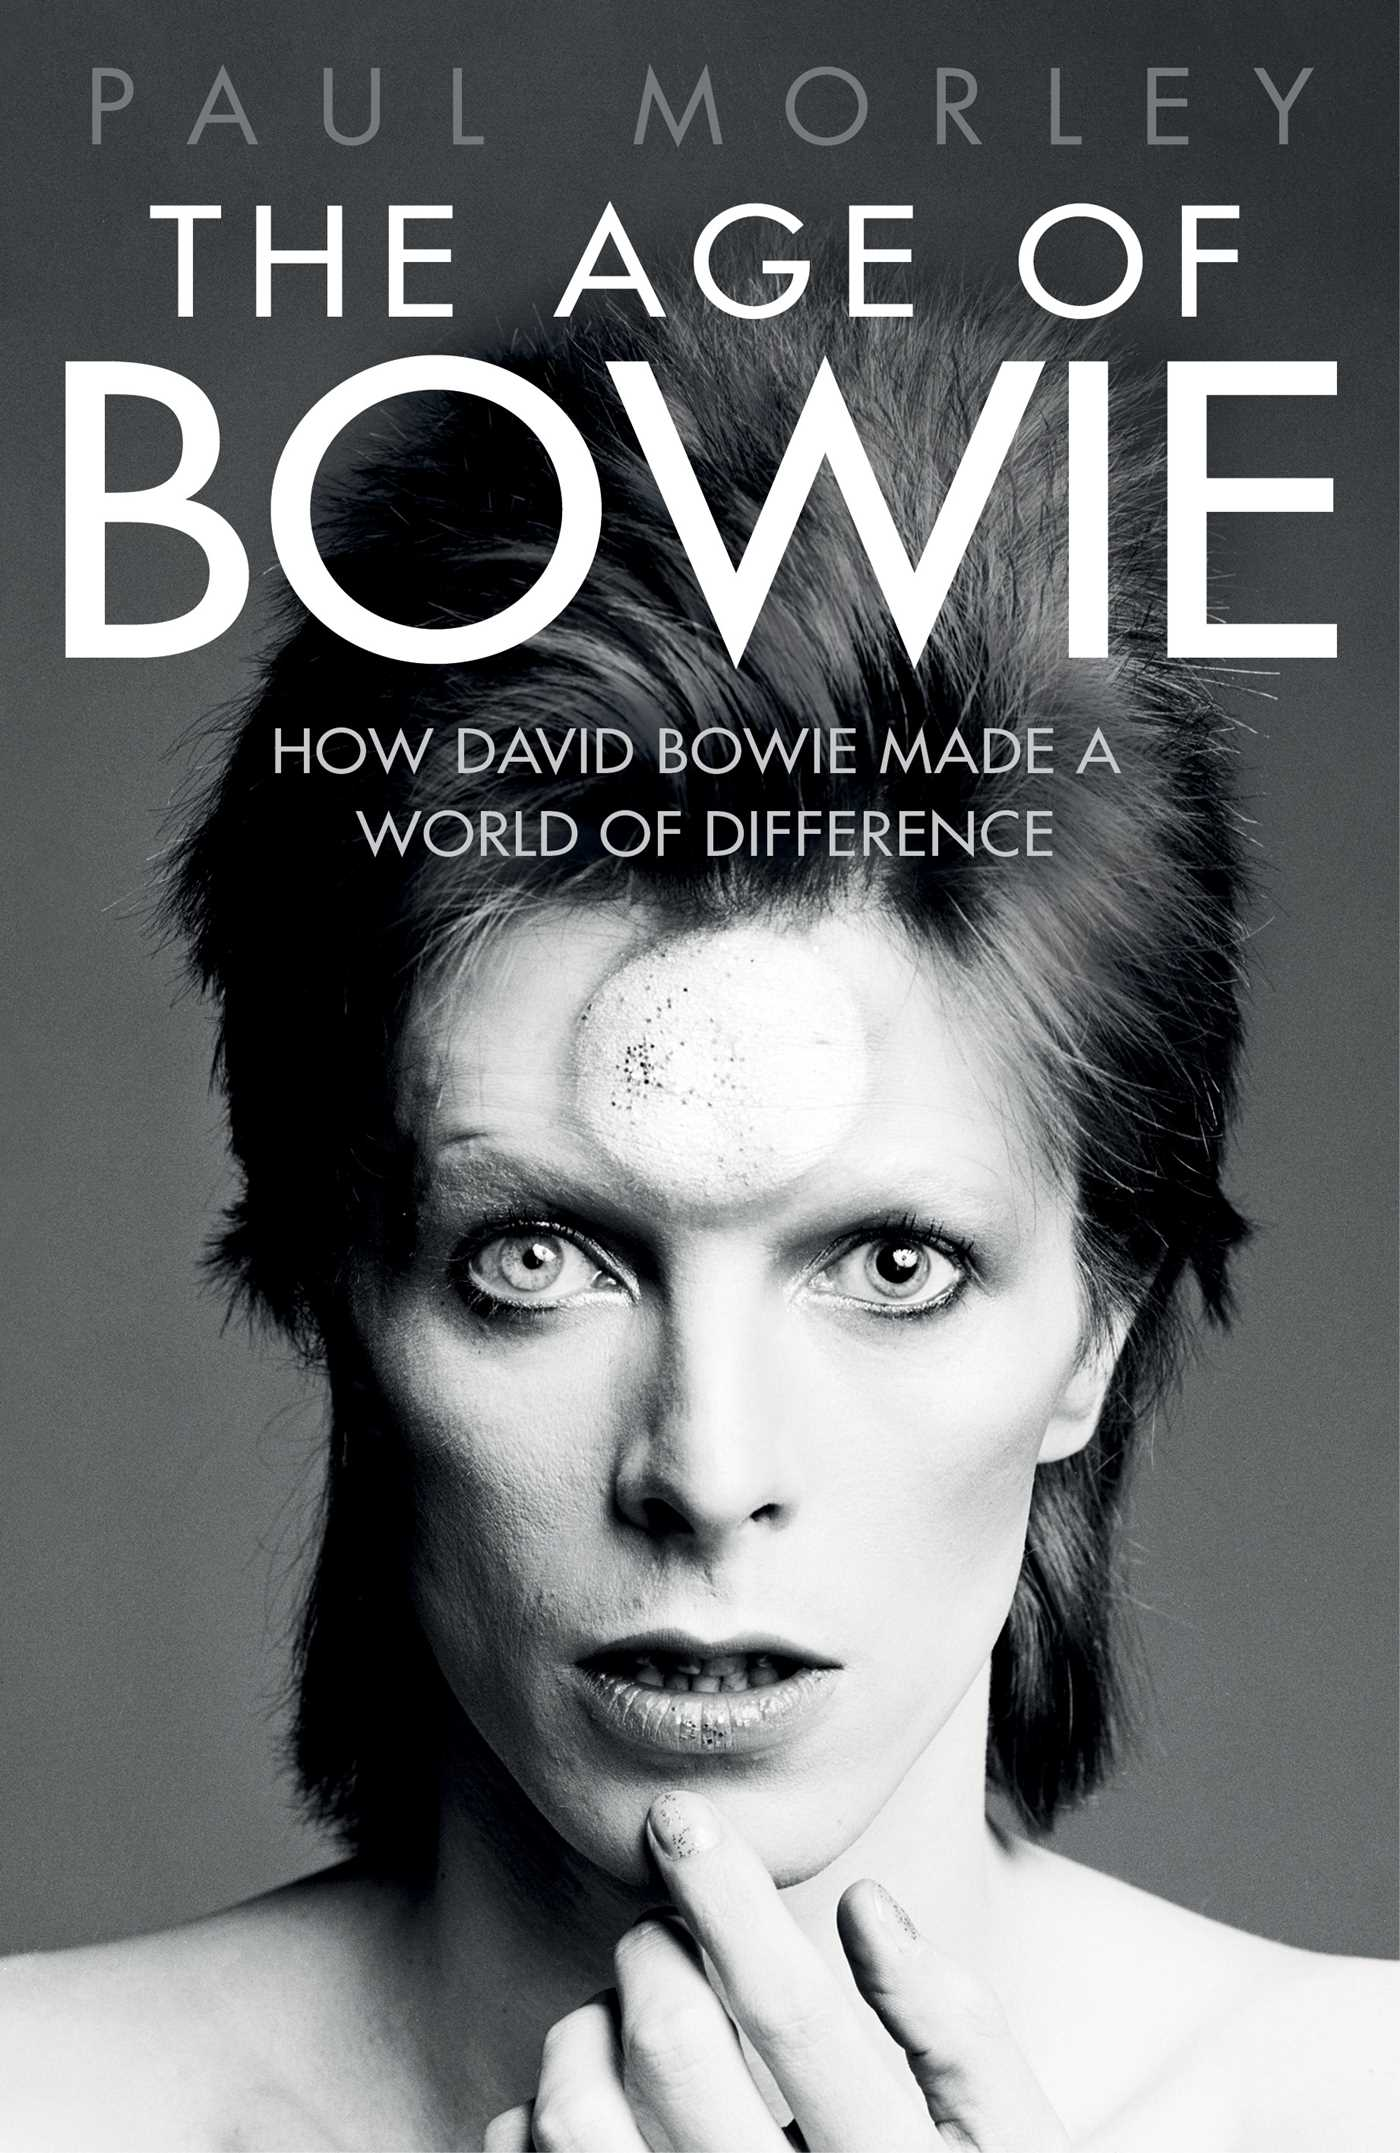 The age of bowie 9781471148088 hr